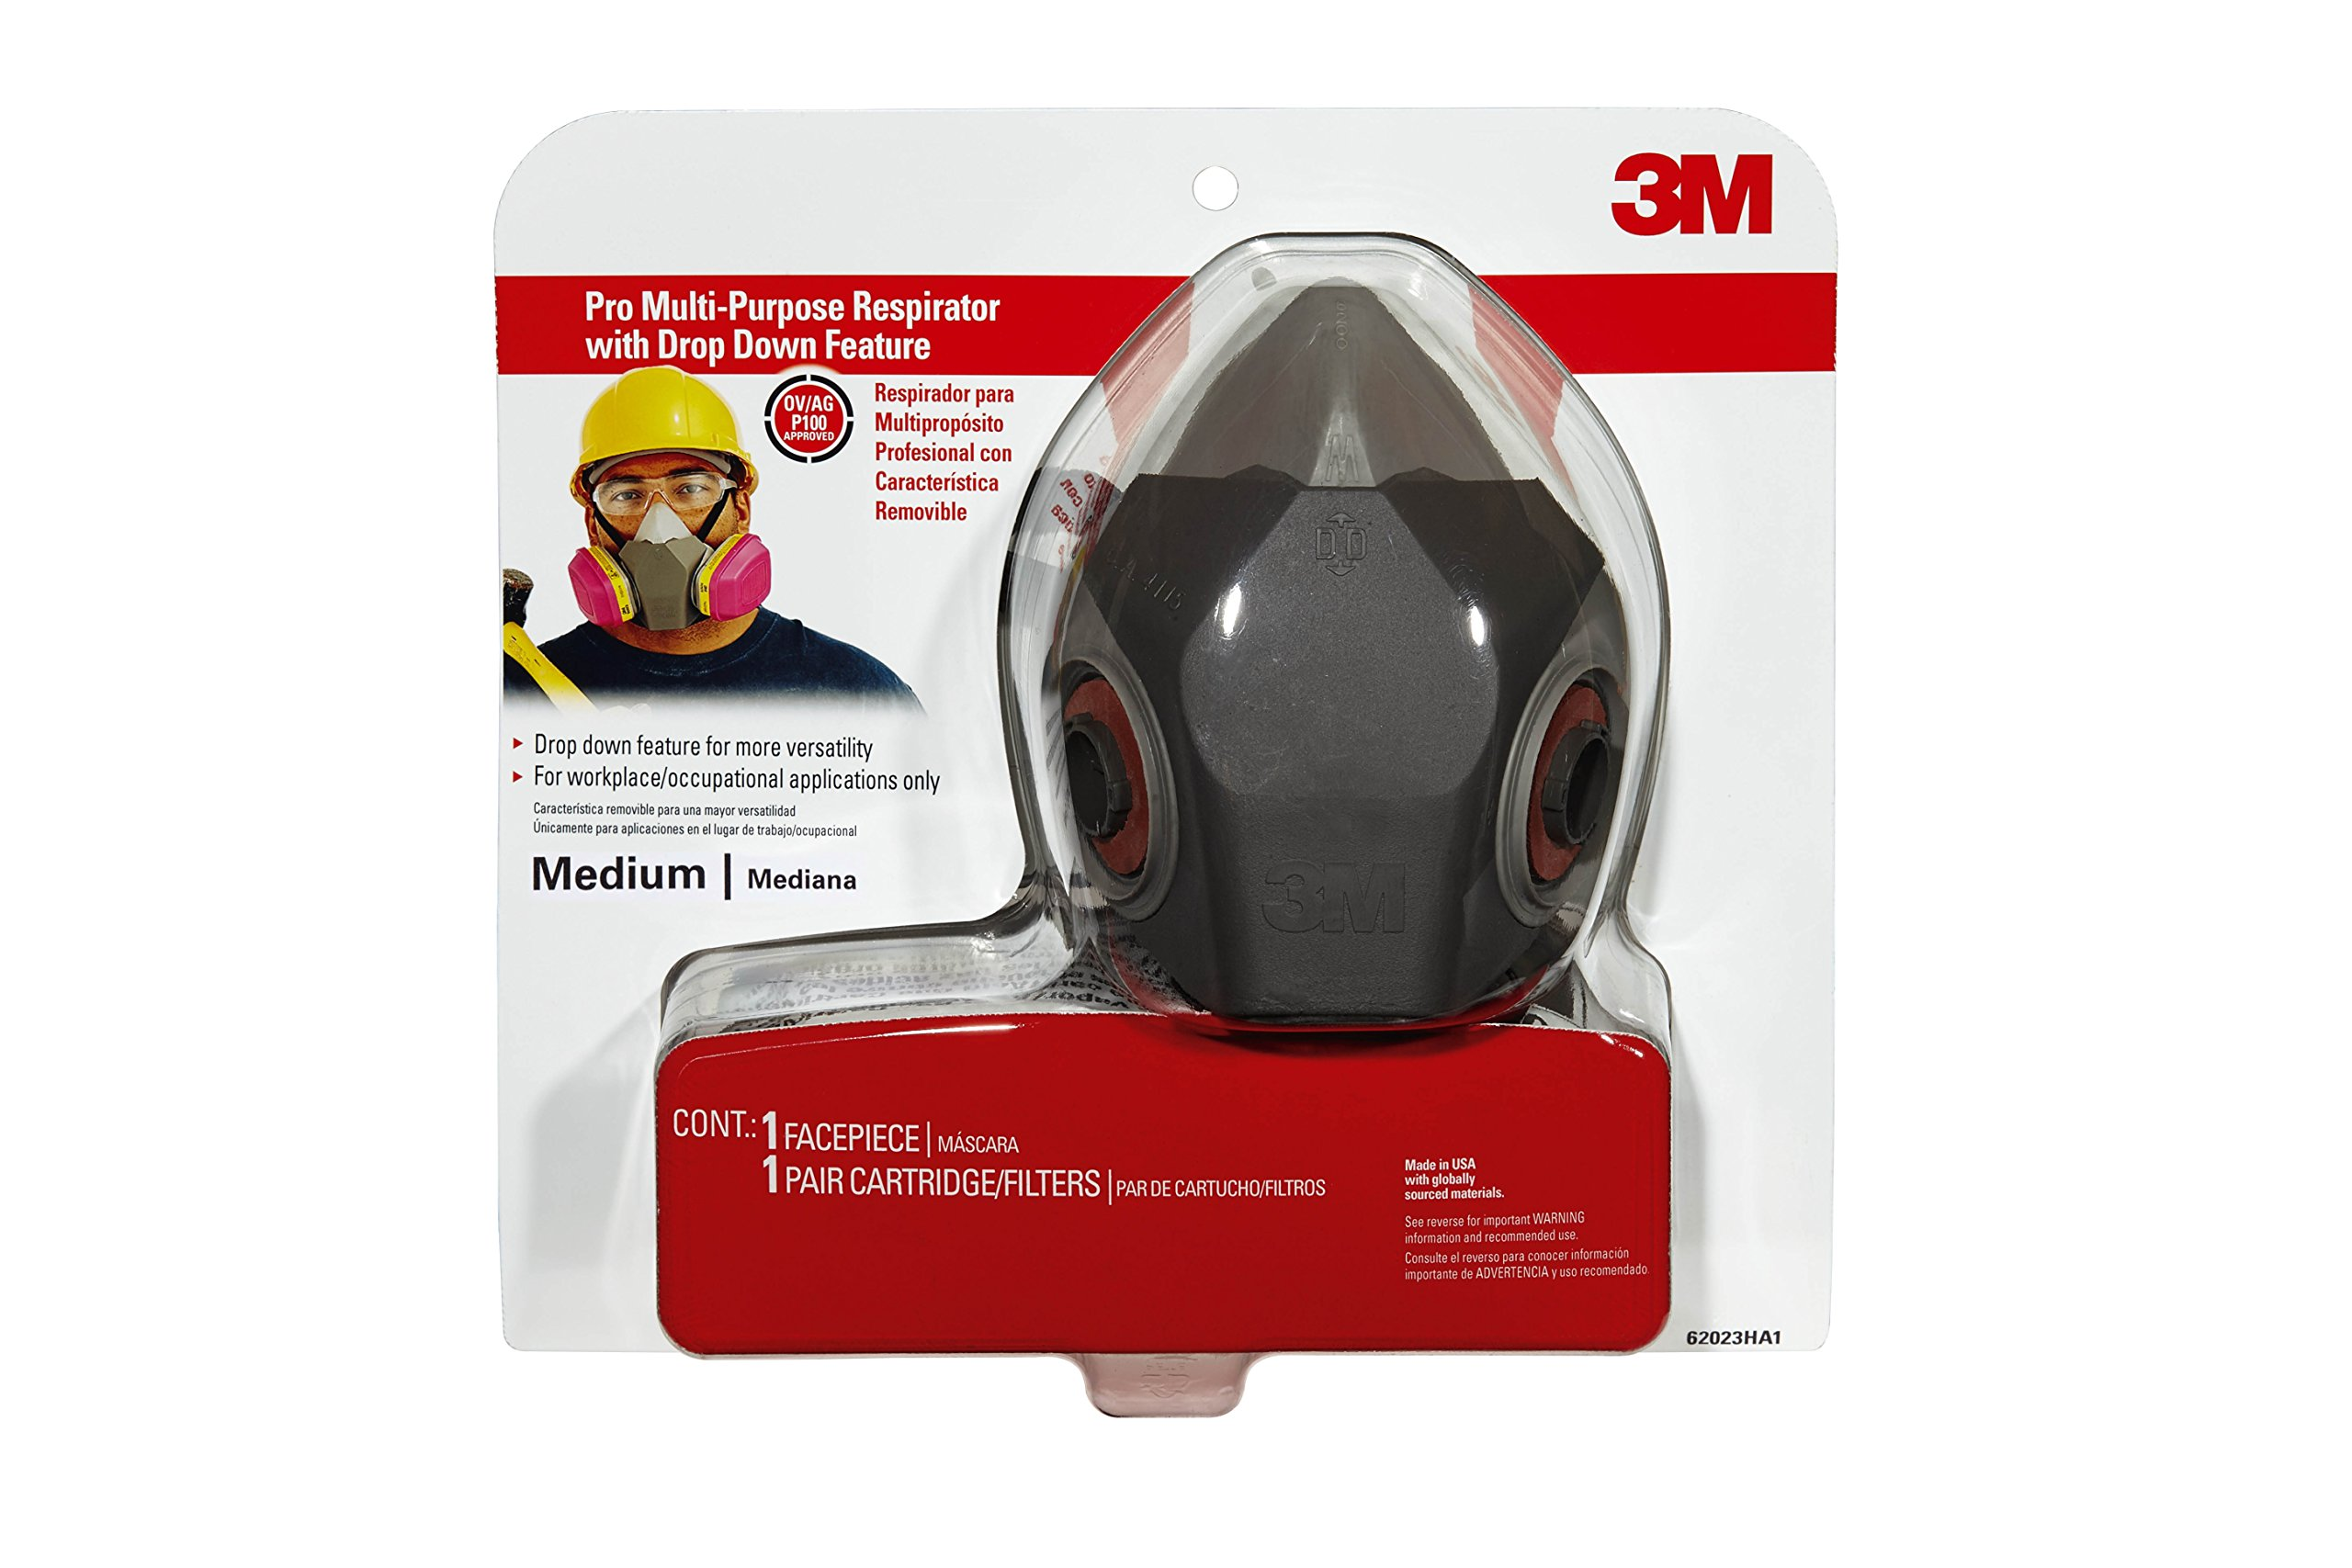 3M 62023DHA1-C Professional Multi-Purpose Drop Down Respirator, Medium by 3M Safety (Image #1)